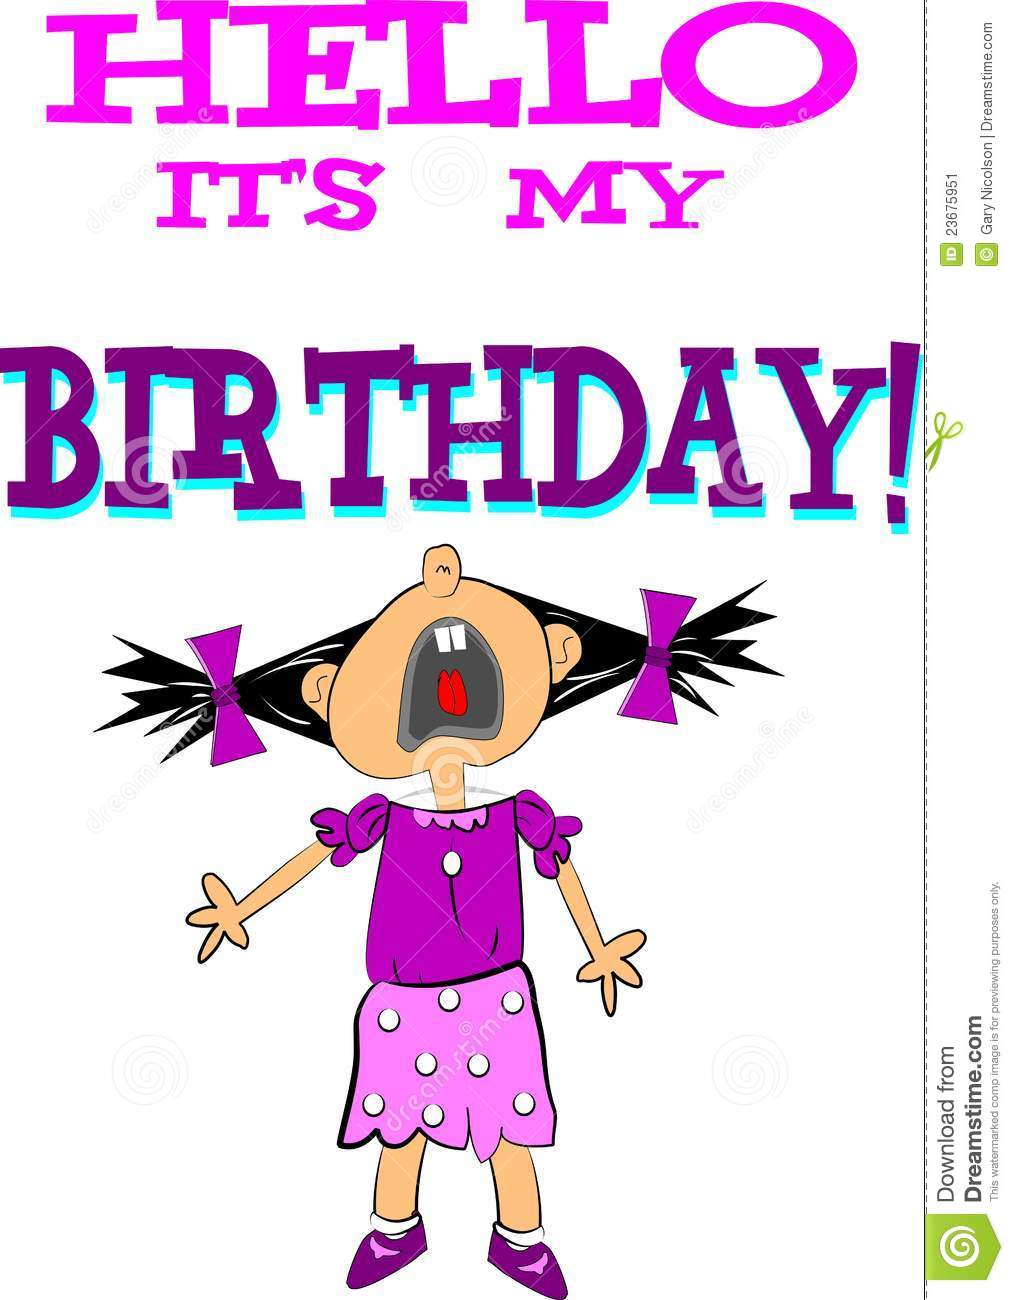 Its My Birthday Relate...